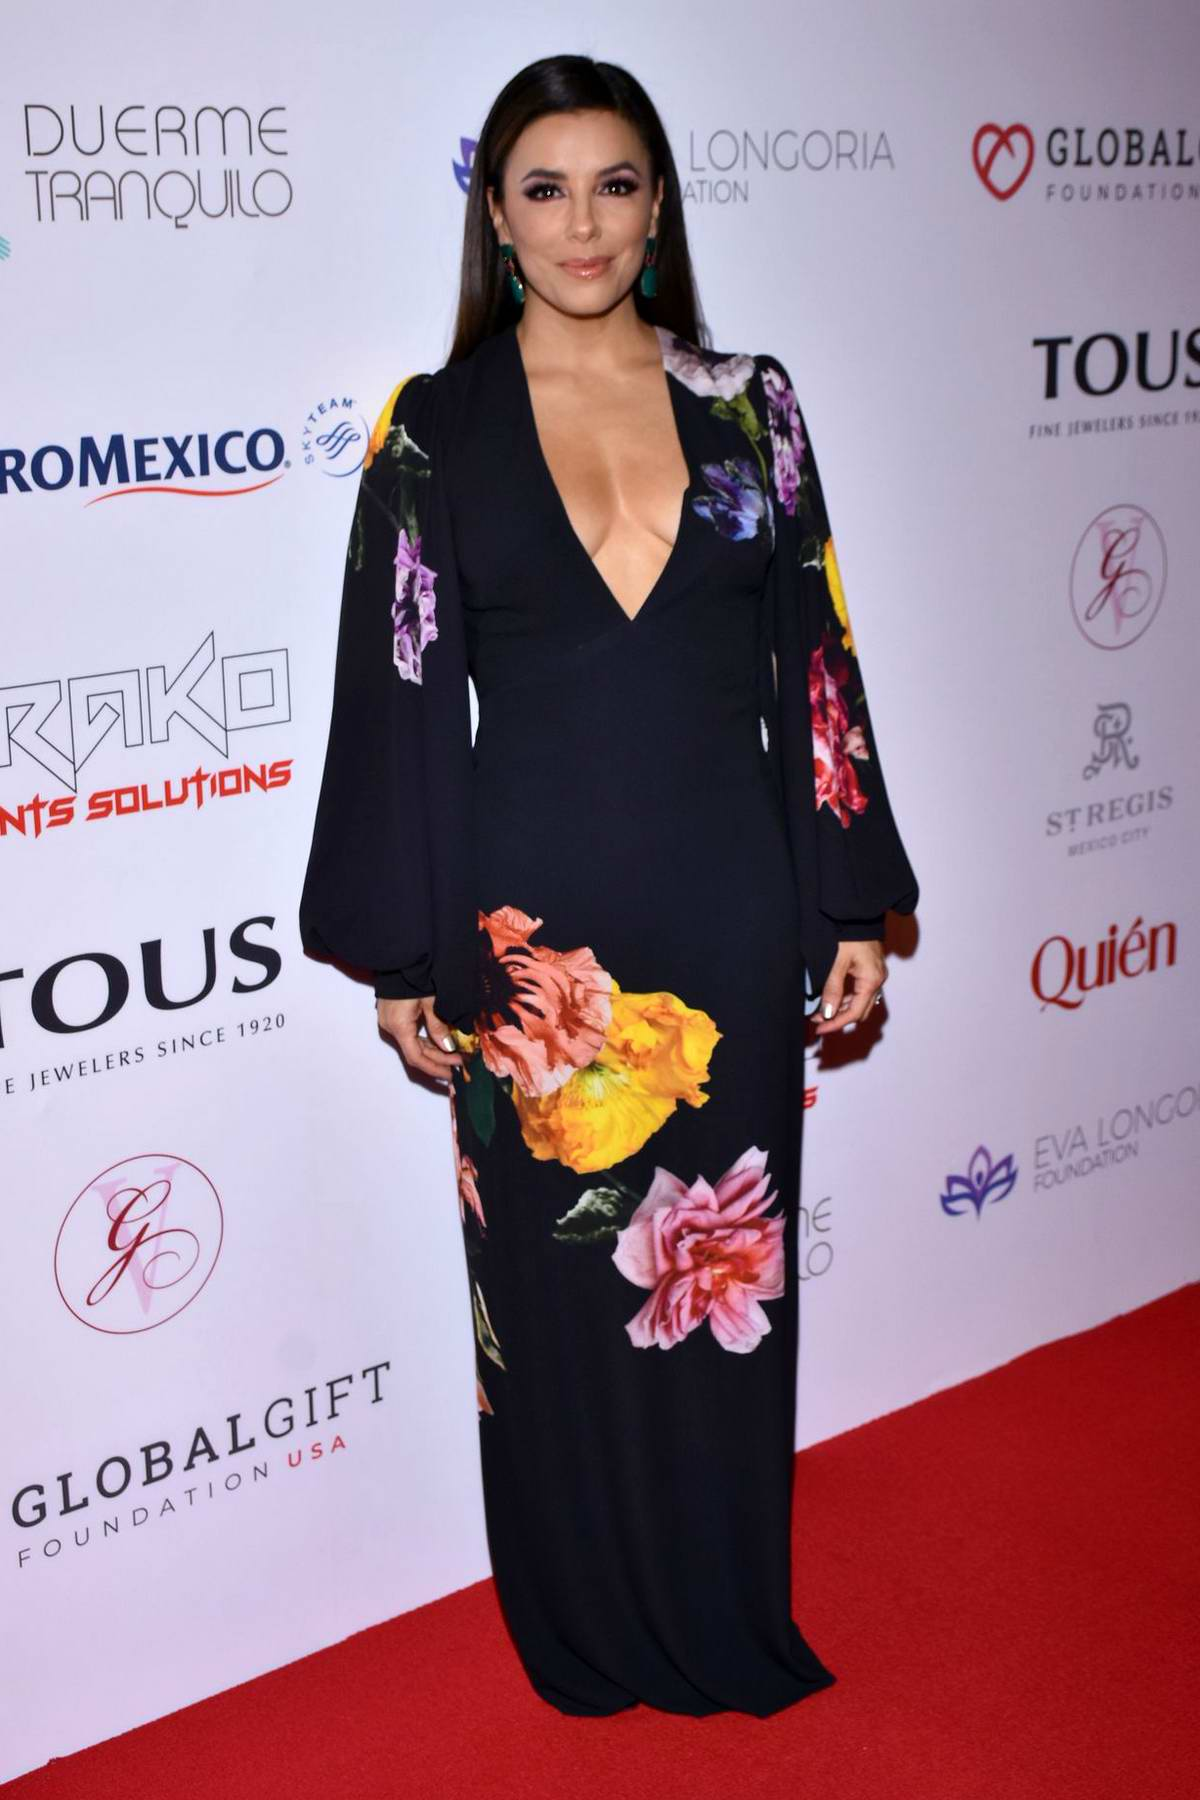 Eva Longoria attends the 5th Global Gift Foundation Gala in Mexico City, Mexico